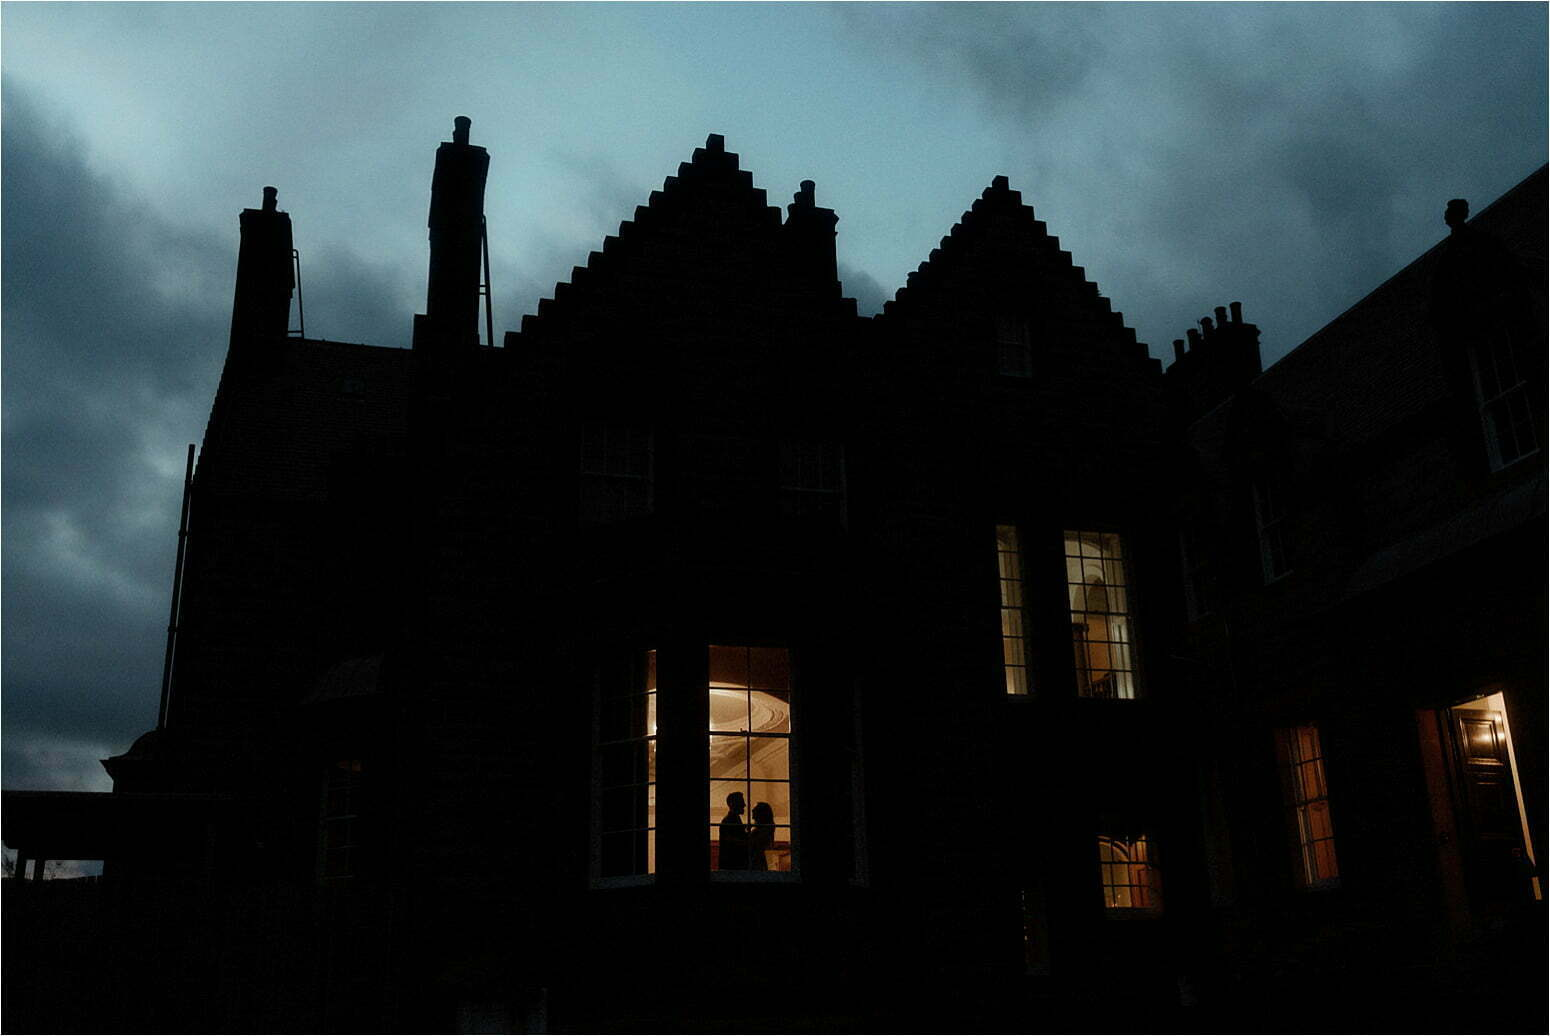 glencoe house at night lit up wit bride and groom in window